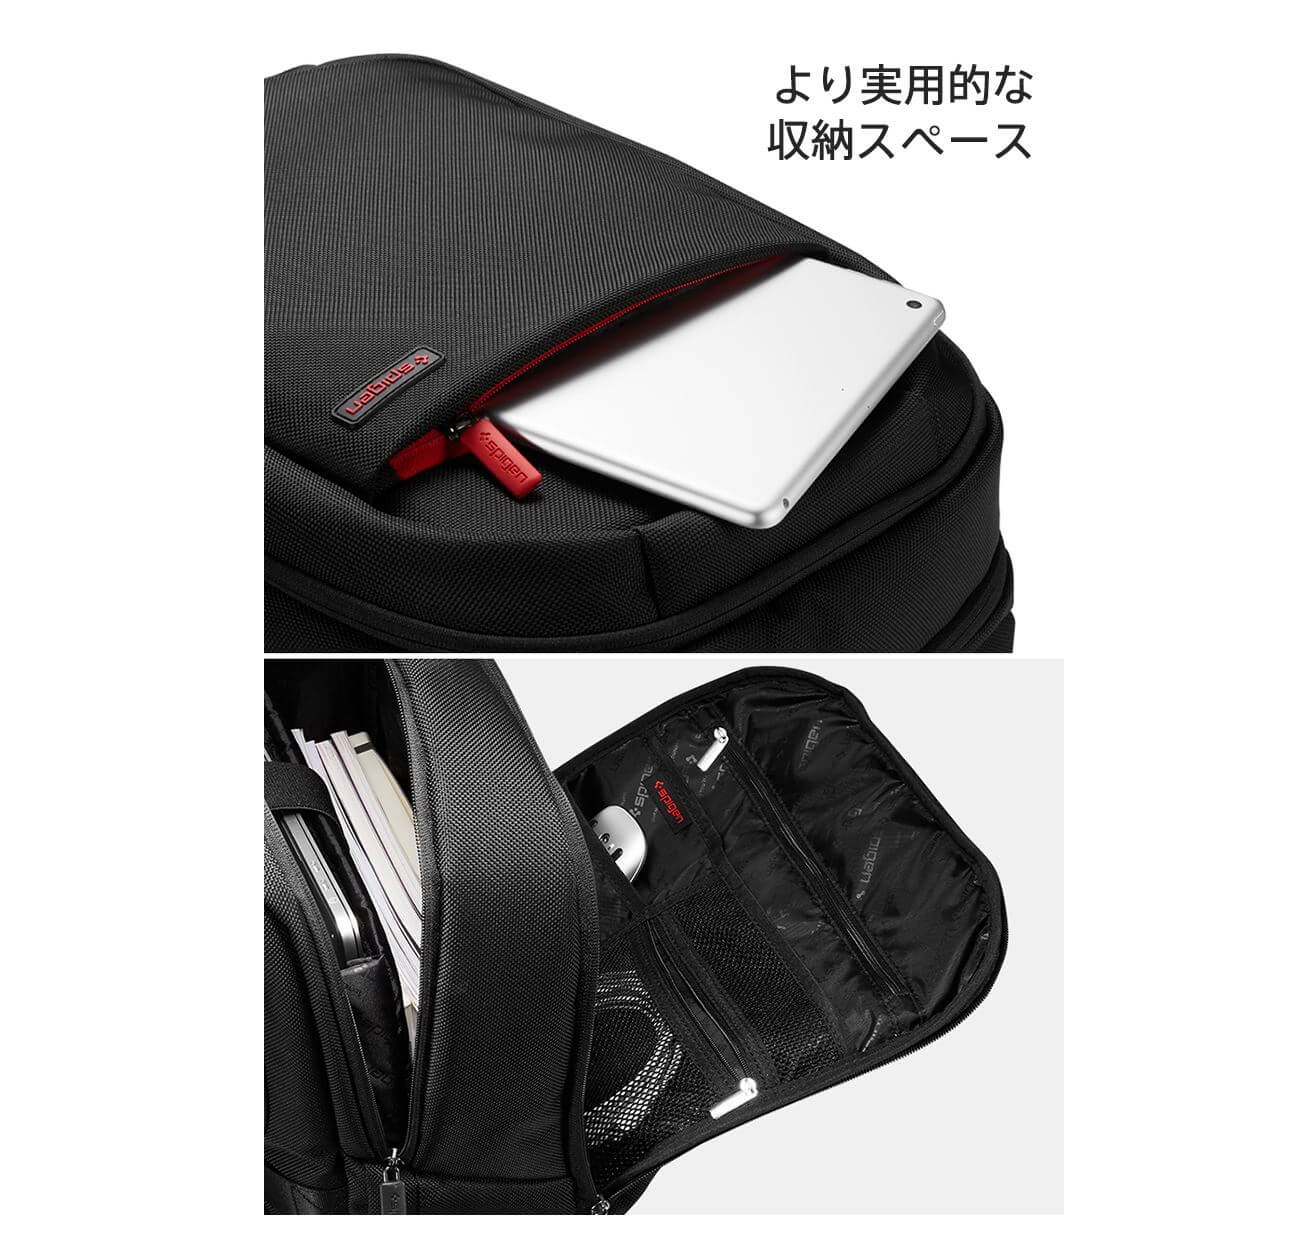 New Coated 2 Plus Backpack